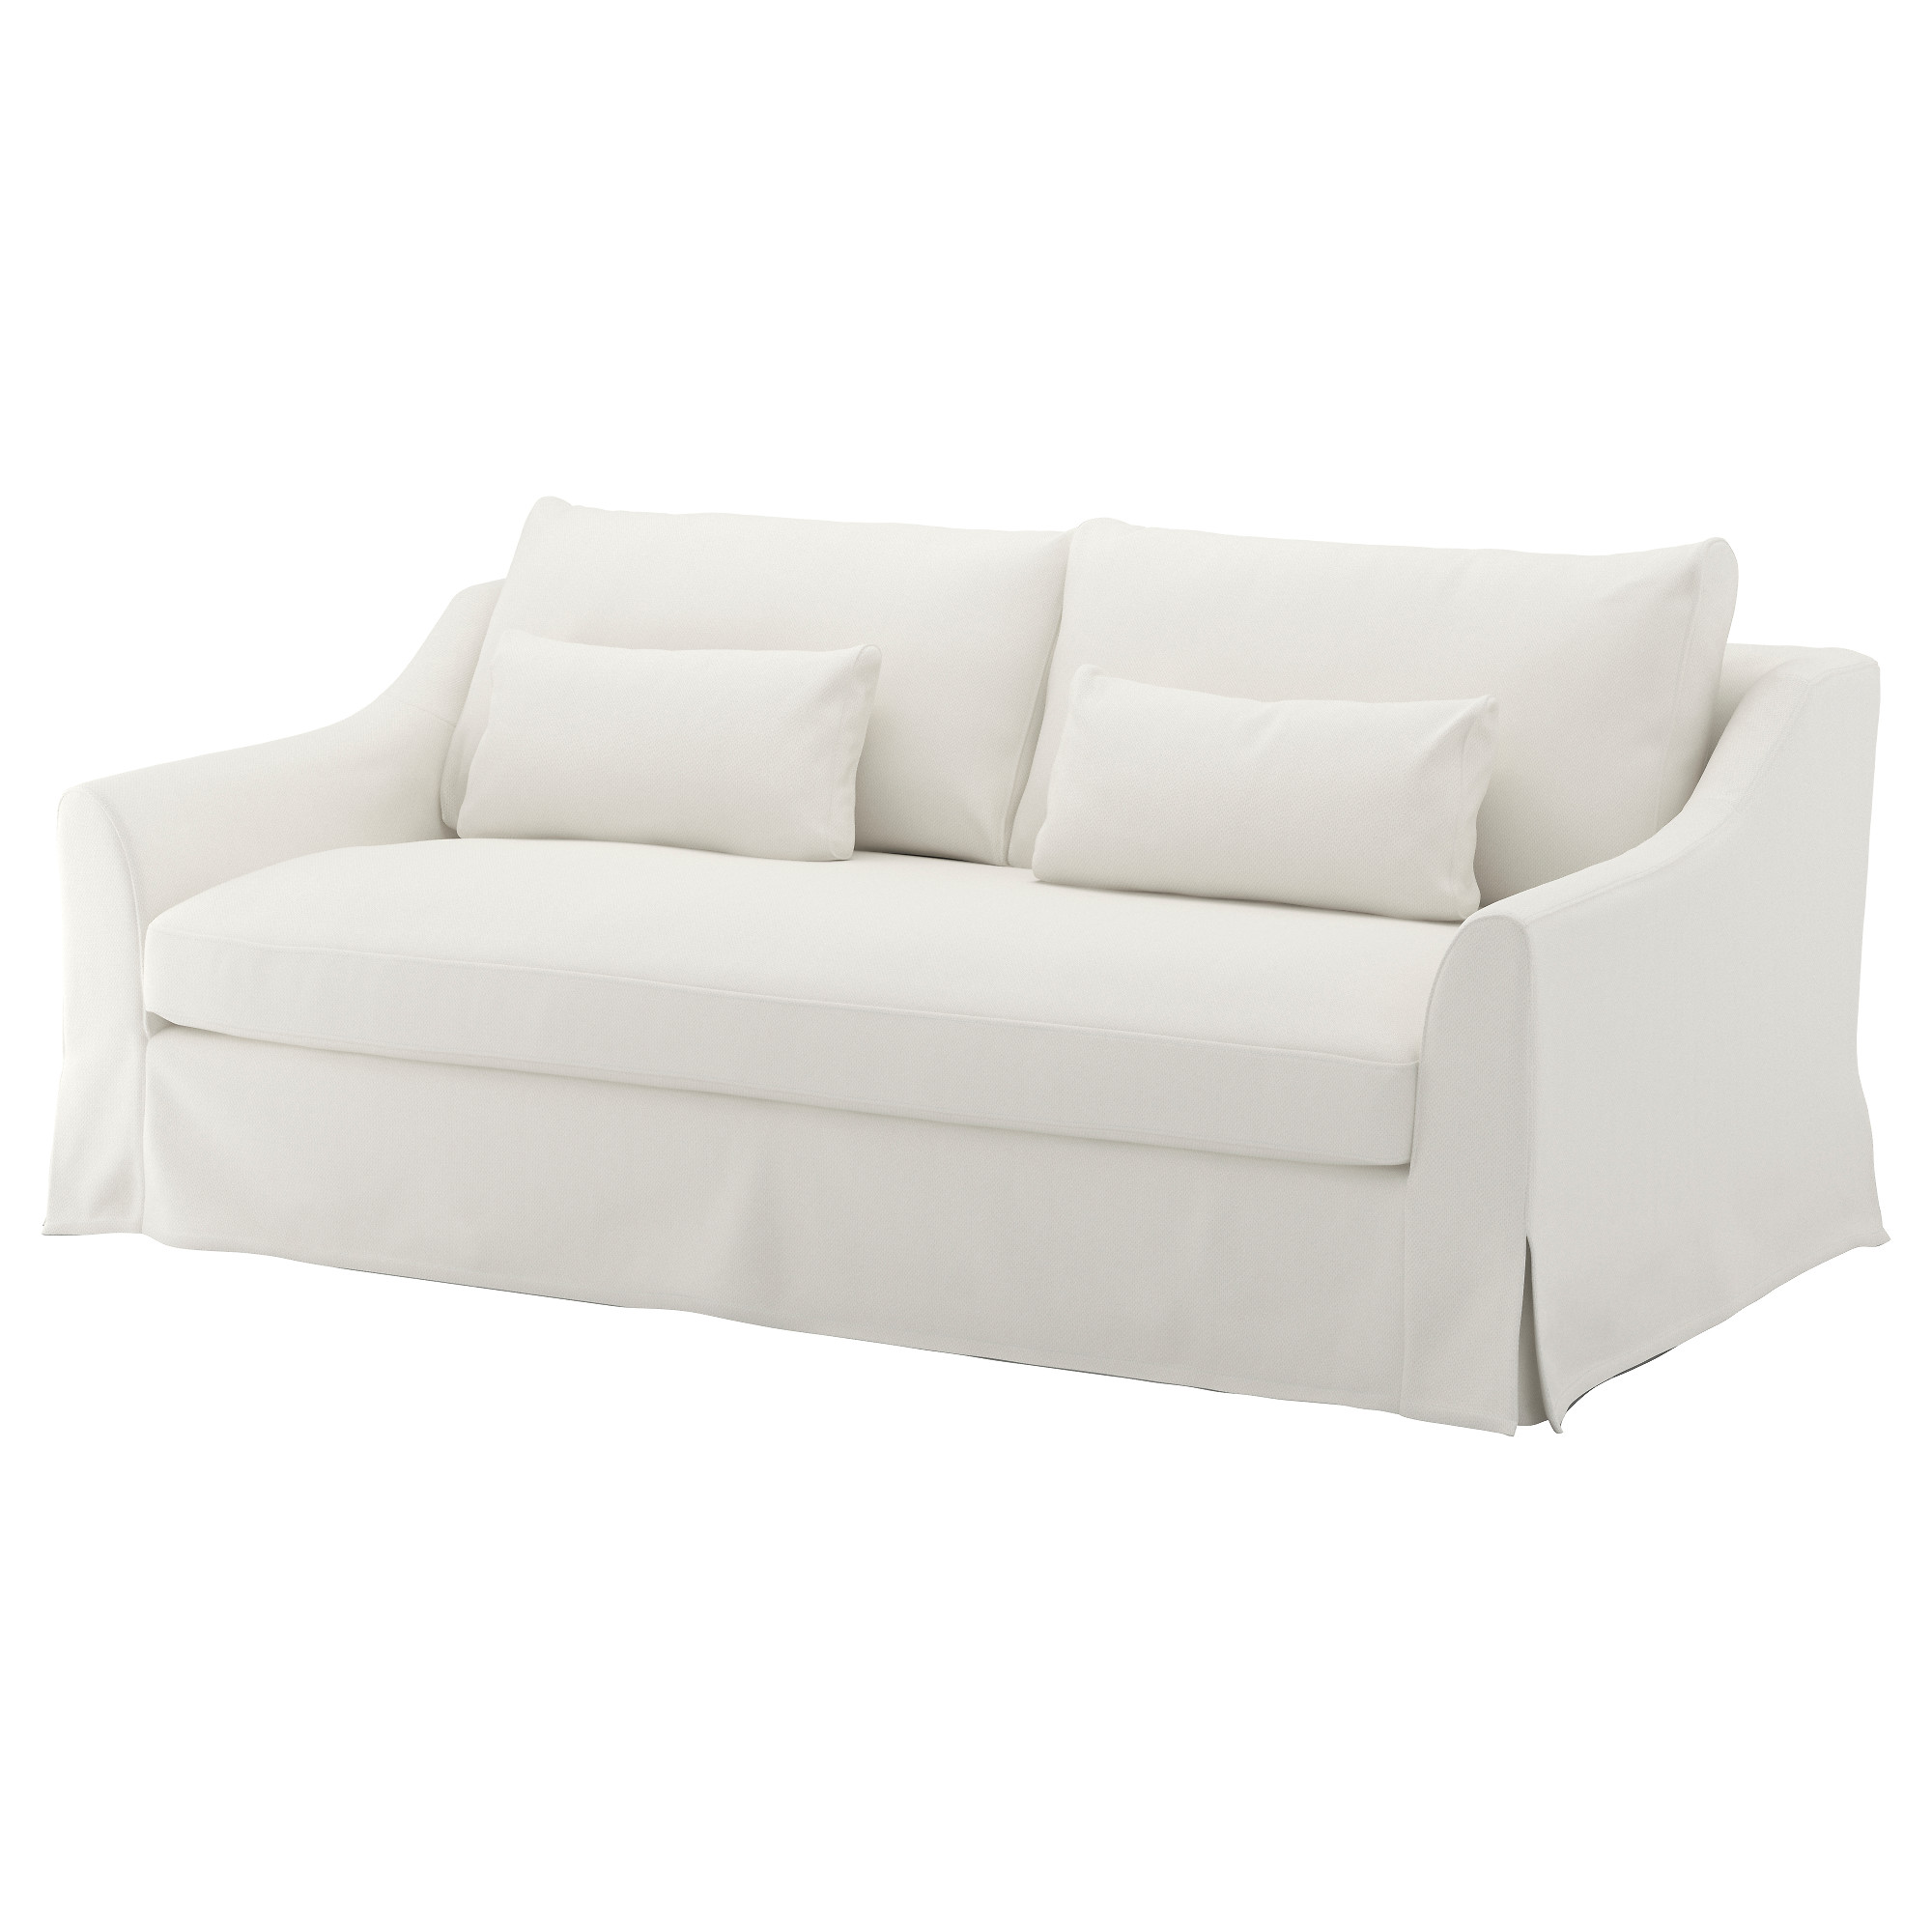 white sofa inter ikea systems b.v. 1999 - 2017 | privacy policy SAULDWF